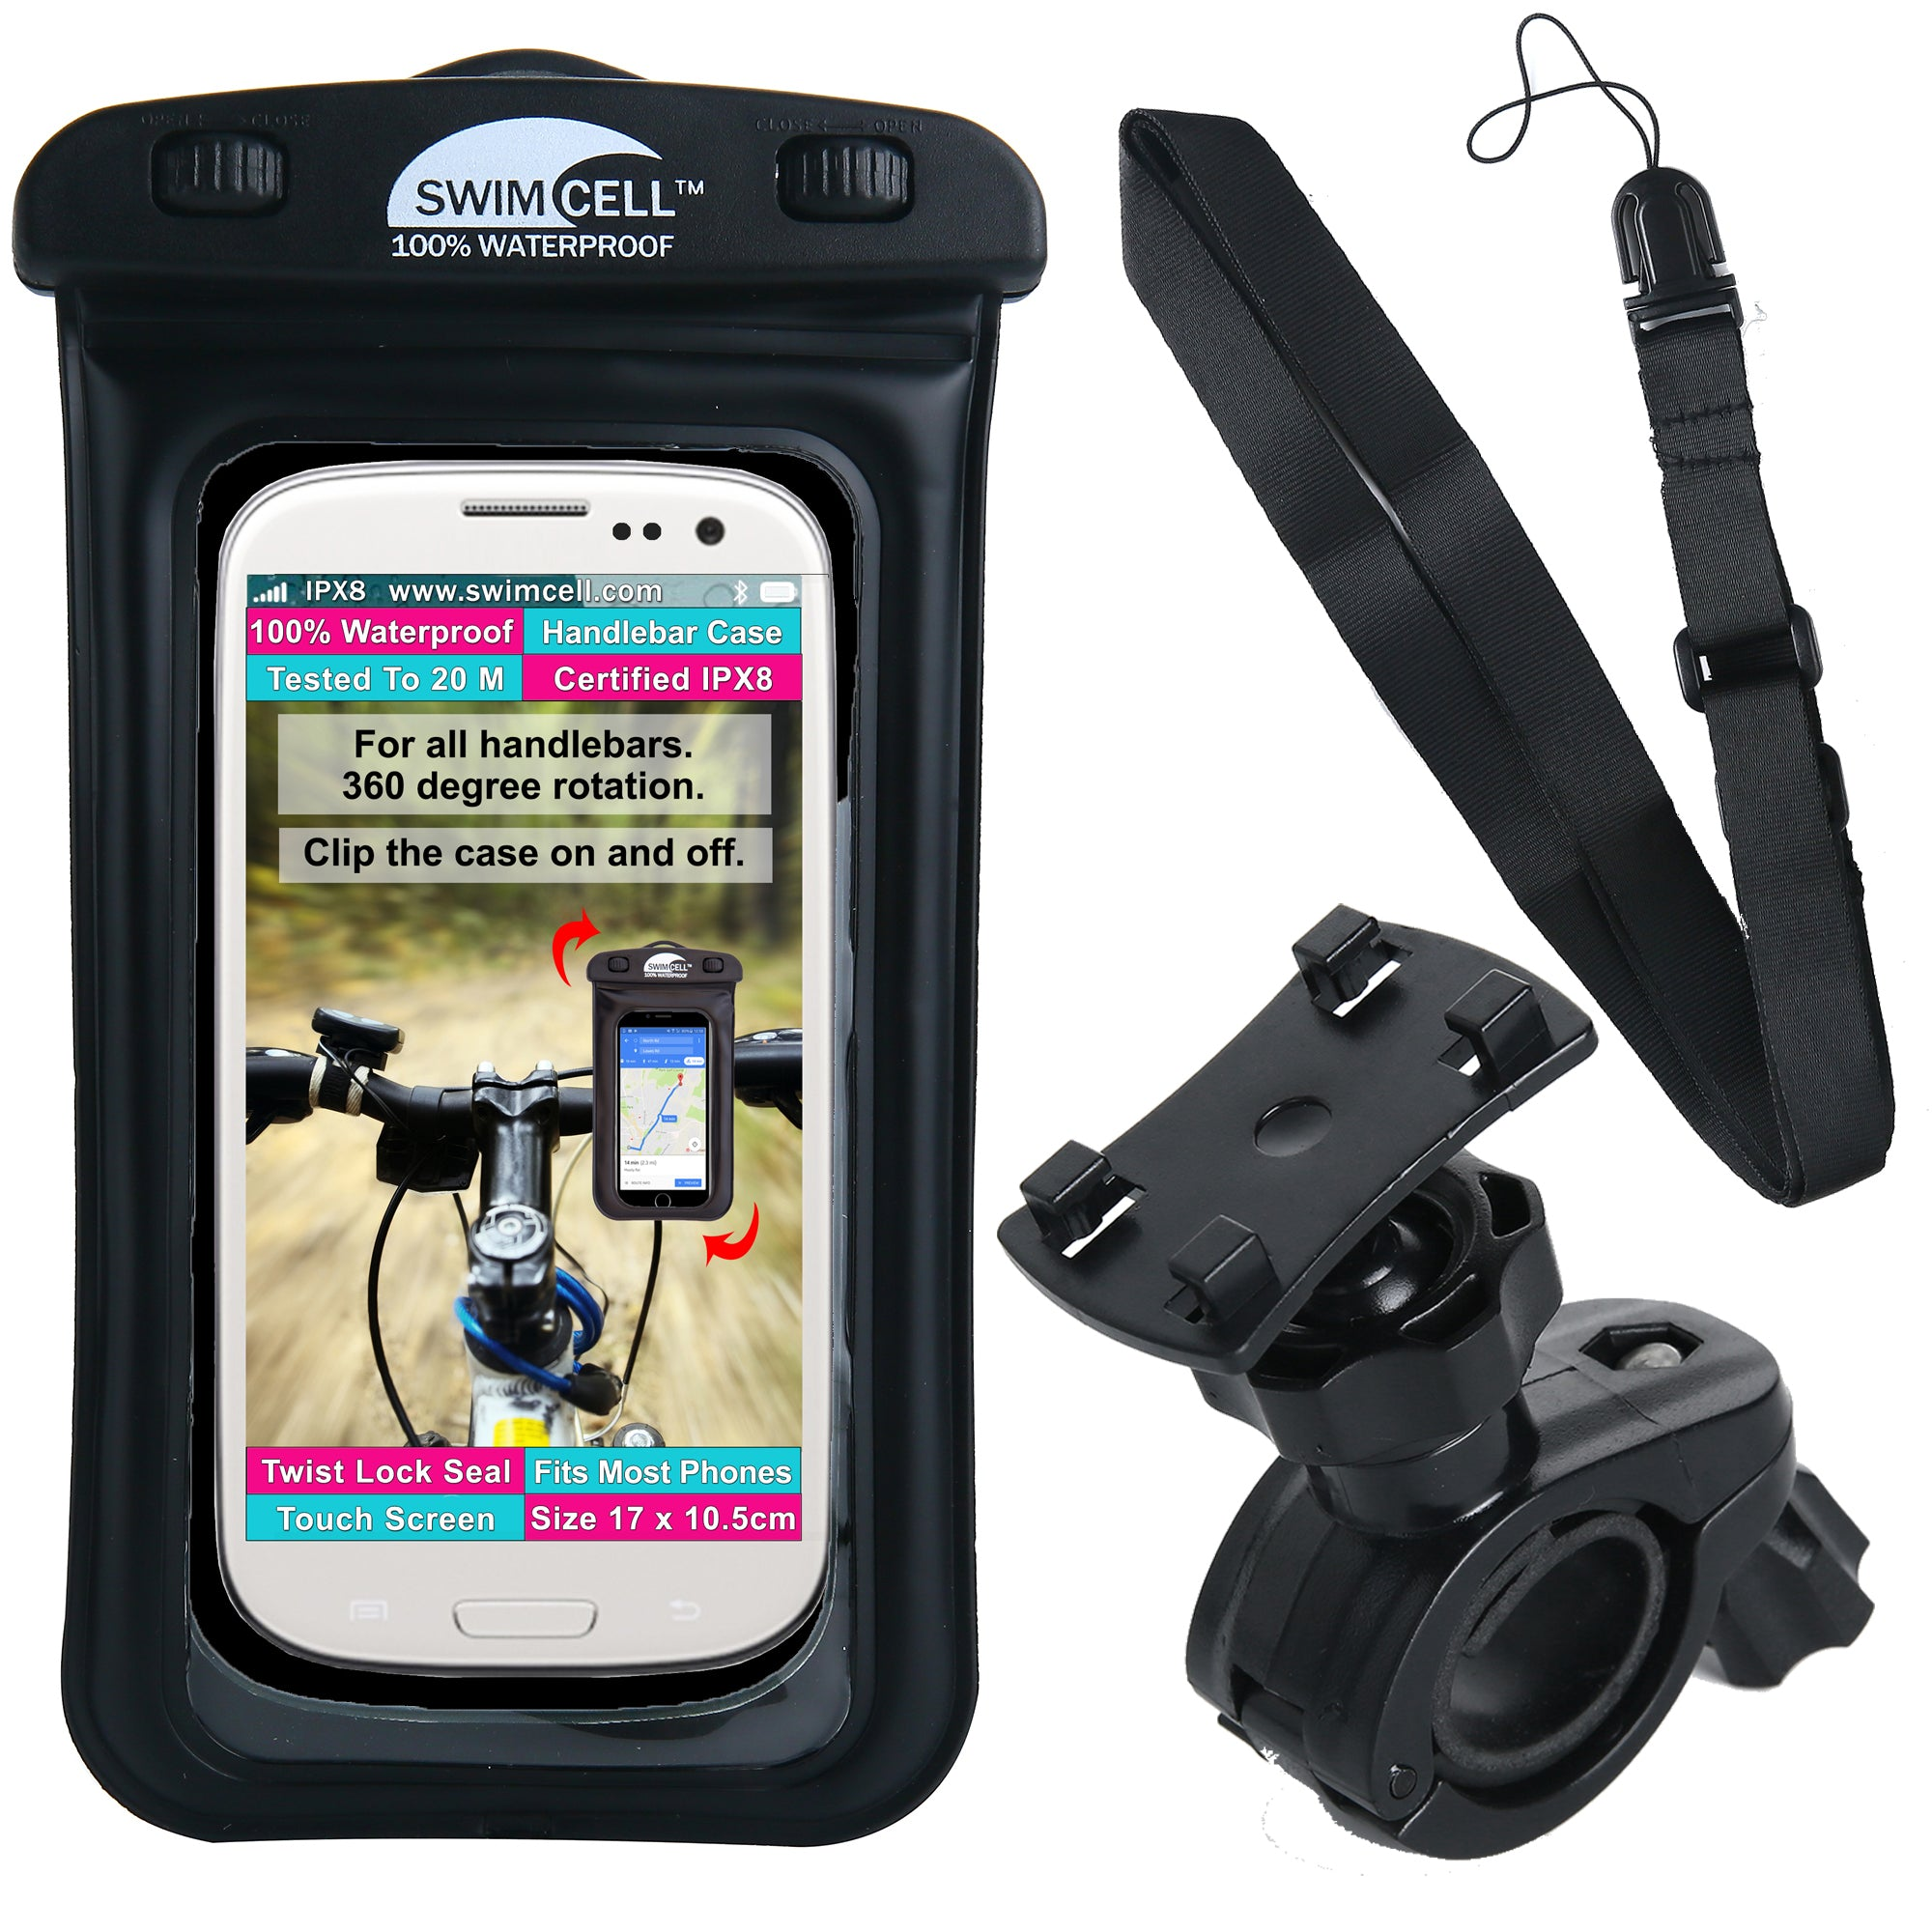 SwimCell Waterproof Phone Case with Handlebar Bike Mount. (10.5cm x 17cm)